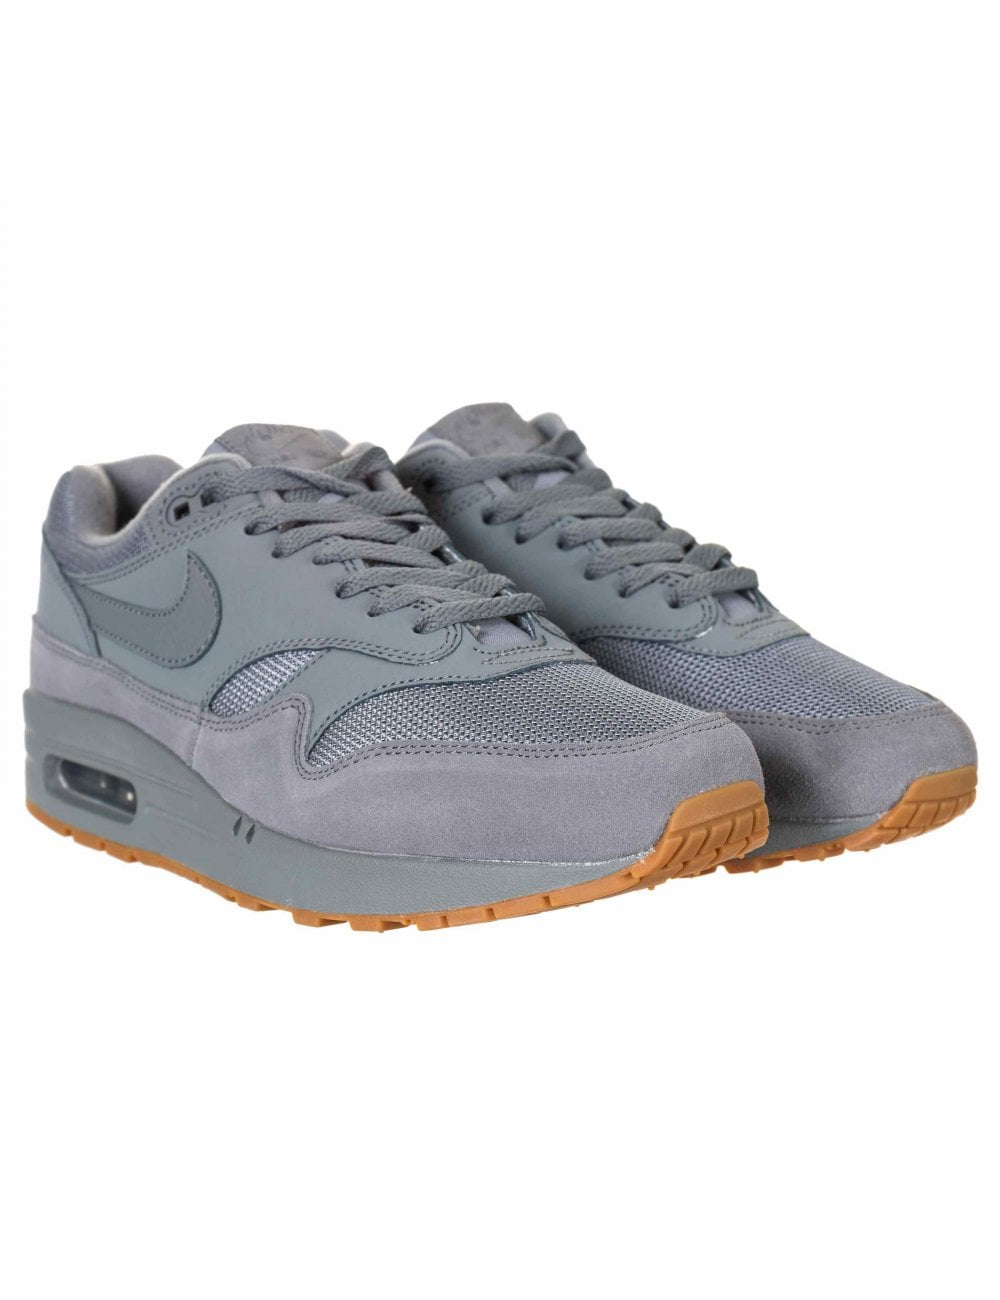 8122d866a7 Nike Air Max 1 Trainers - Cool Grey/Cool Grey - Footwear from Fat ...